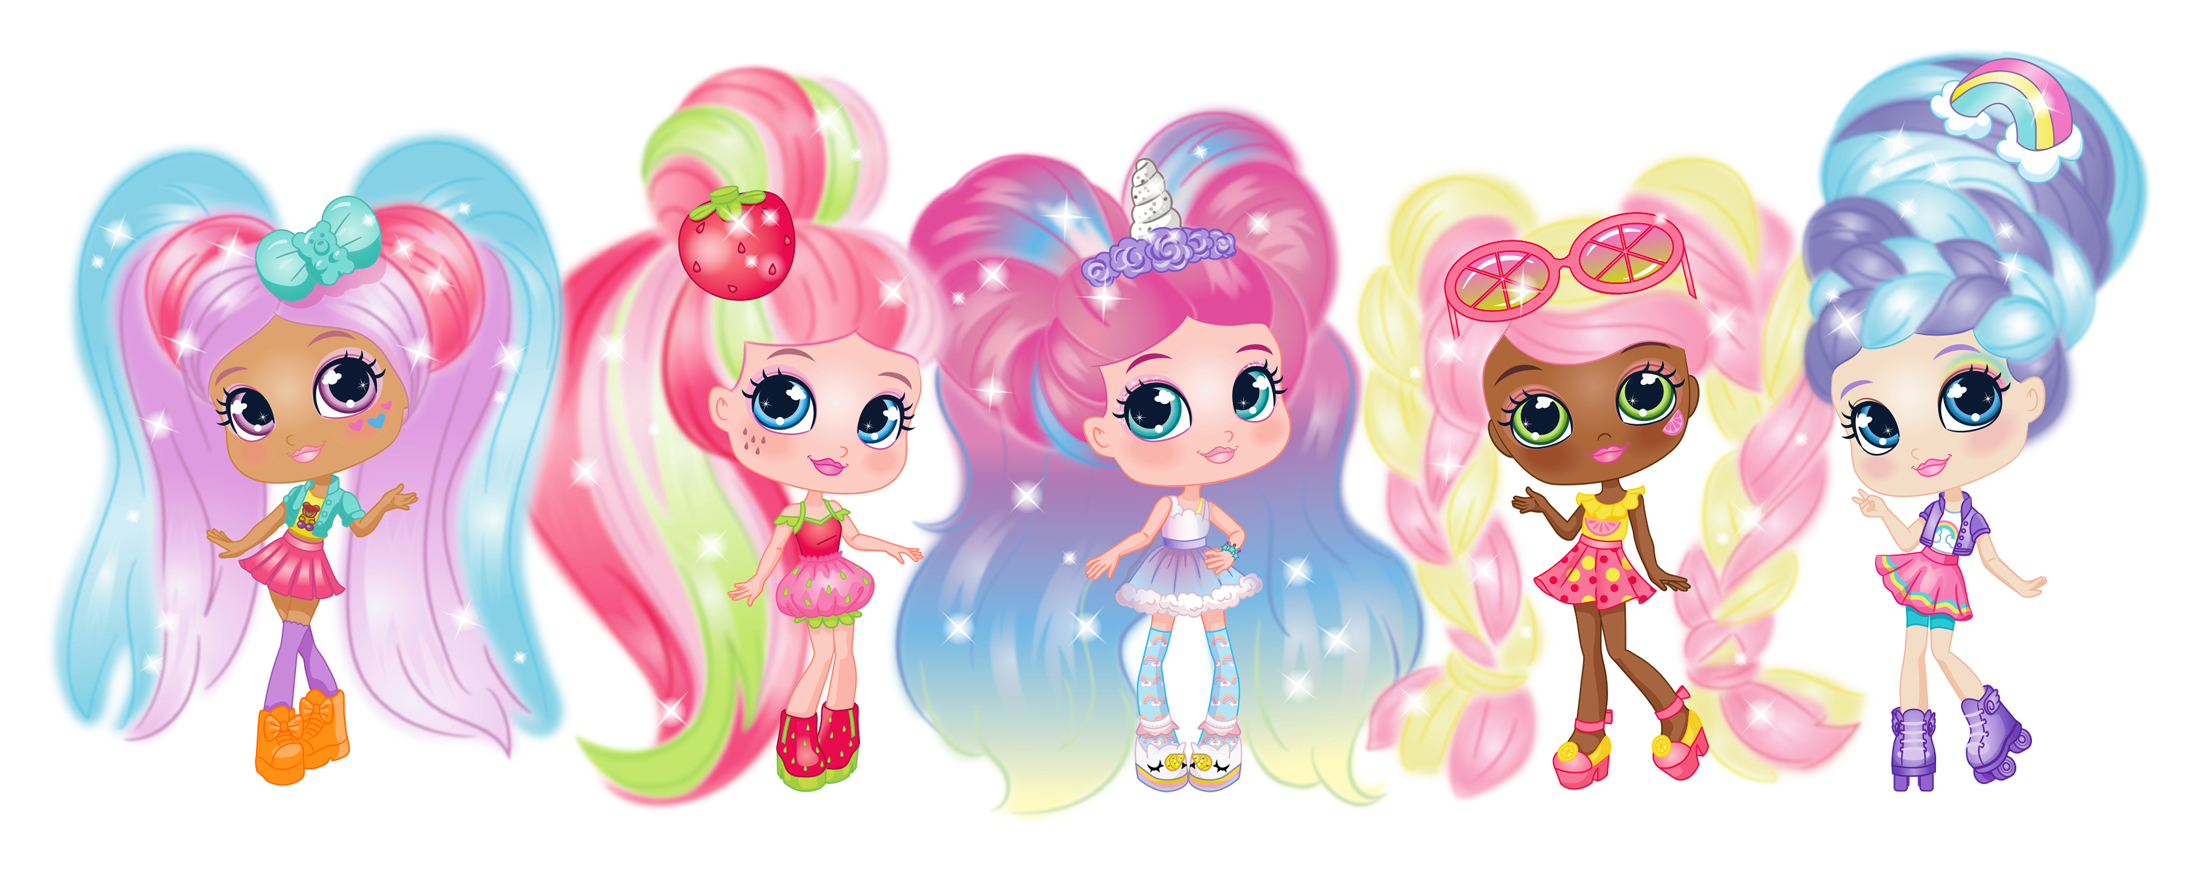 Mona Daly Illustration Jakks Colorful girls